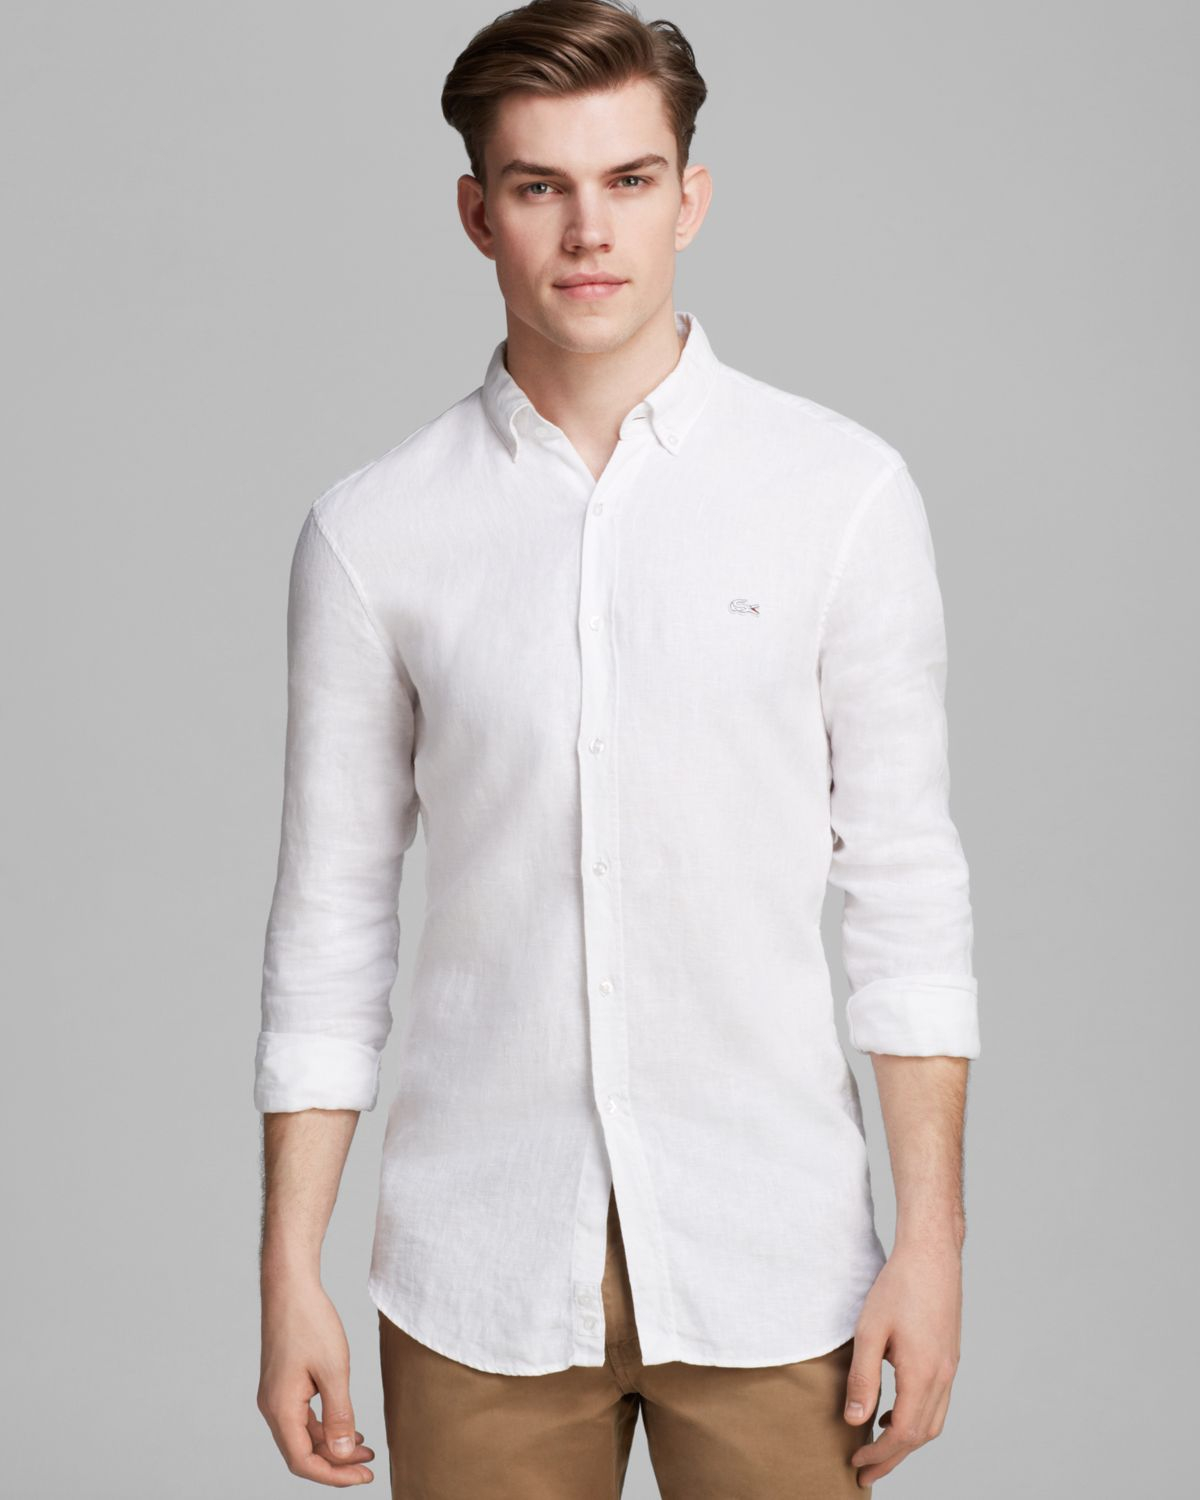 lyst lacoste linen sport shirt slim fit in white for men. Black Bedroom Furniture Sets. Home Design Ideas